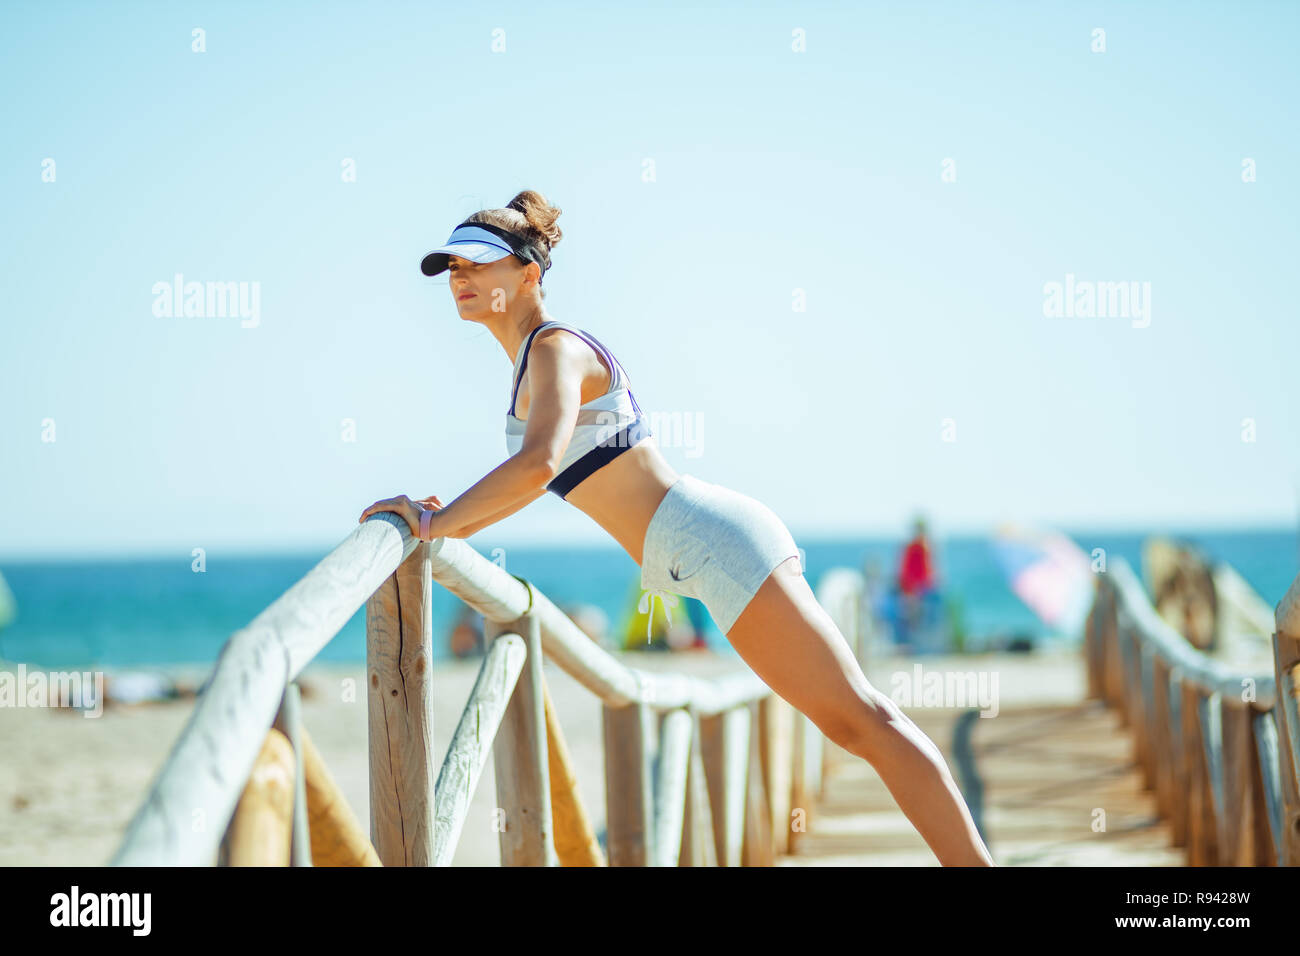 young woman jogger in sport clothes on the beach doing pushups  30